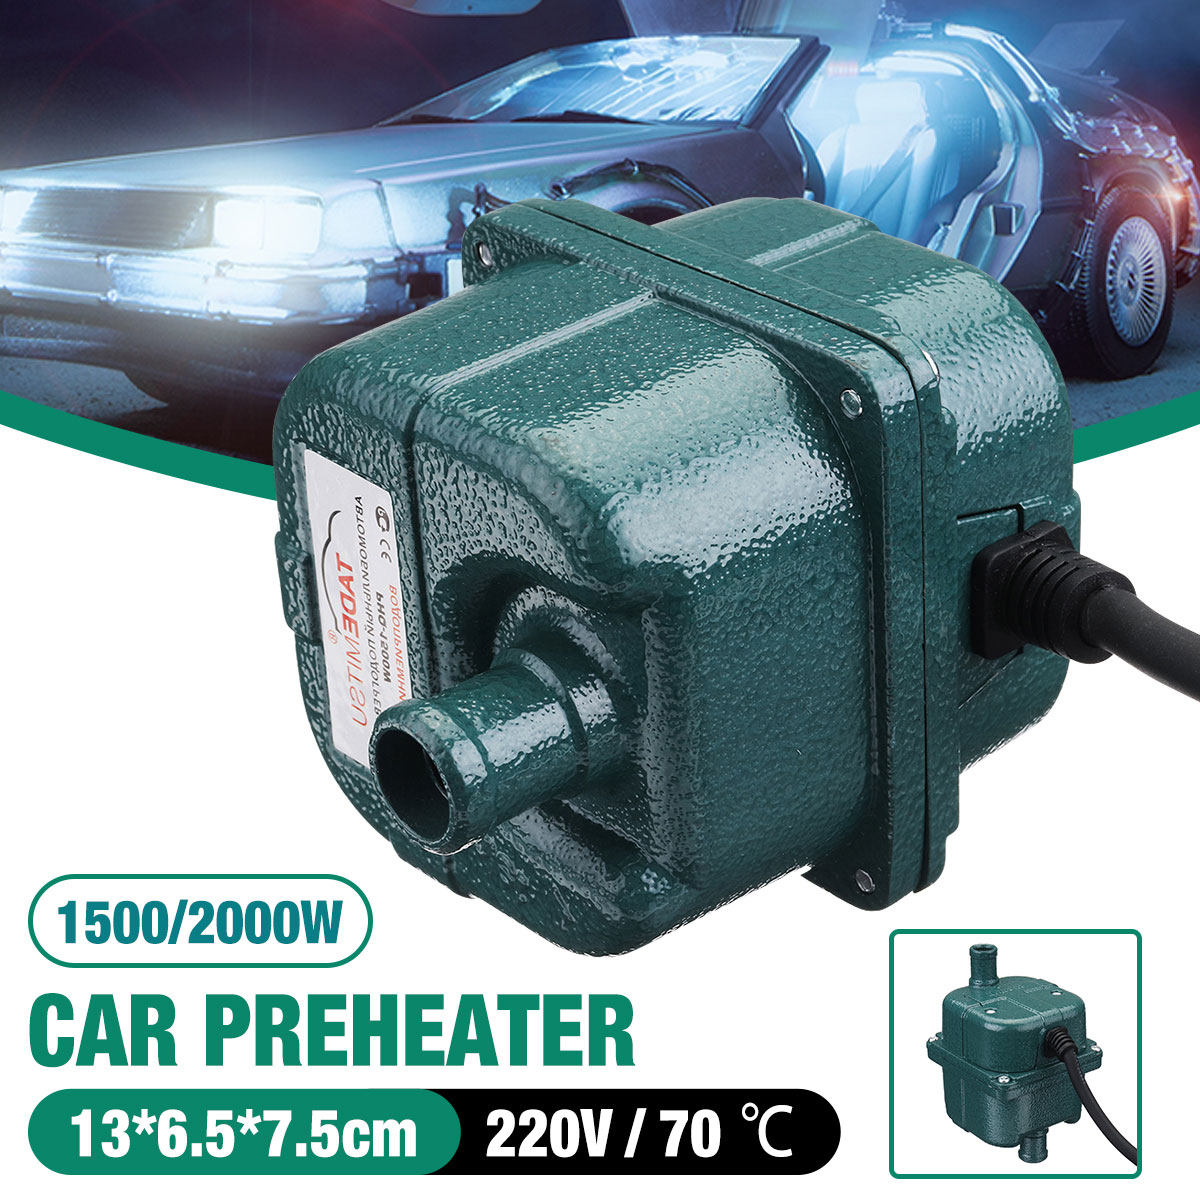 220V 1000W/1500W/2000W Auto Car Engine Pump Water Tank Air Cooled Engine Heater Preheater Heating & Fans     - title=